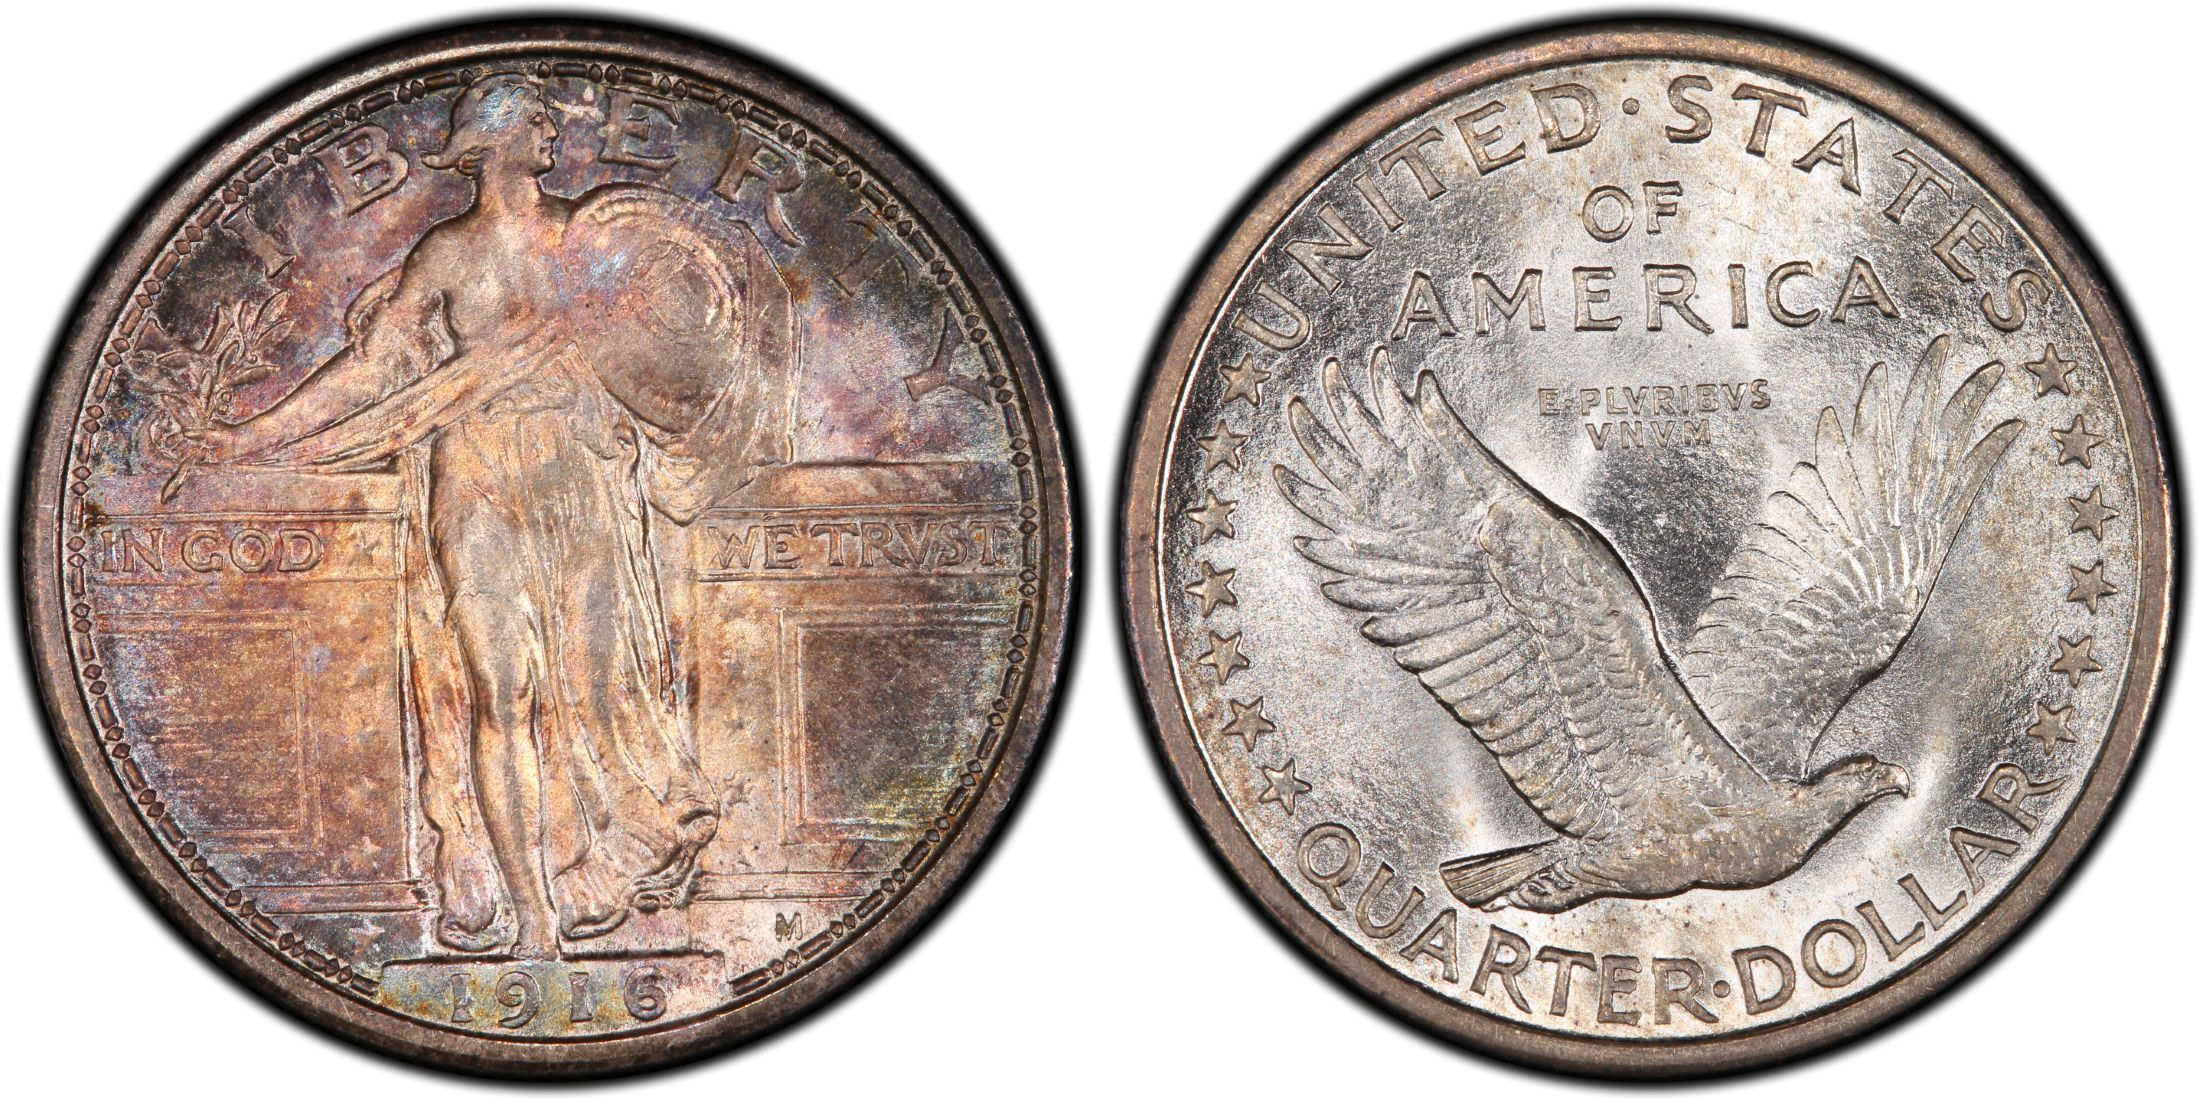 1916 Standing Liberty Quarter Dollar- One of the rarer American coins, it is also one of the most beautiful designs ever crafted by the US mint. Production of the quarter was limited to Philadelphia and only happened during half of the year because the mint was still producing barber quarters that year. PCGS estimates that only 10,000 coins have survived. An AU55 example sold recently for $11,000, but the coin in the image is worth upwards of $35,000.